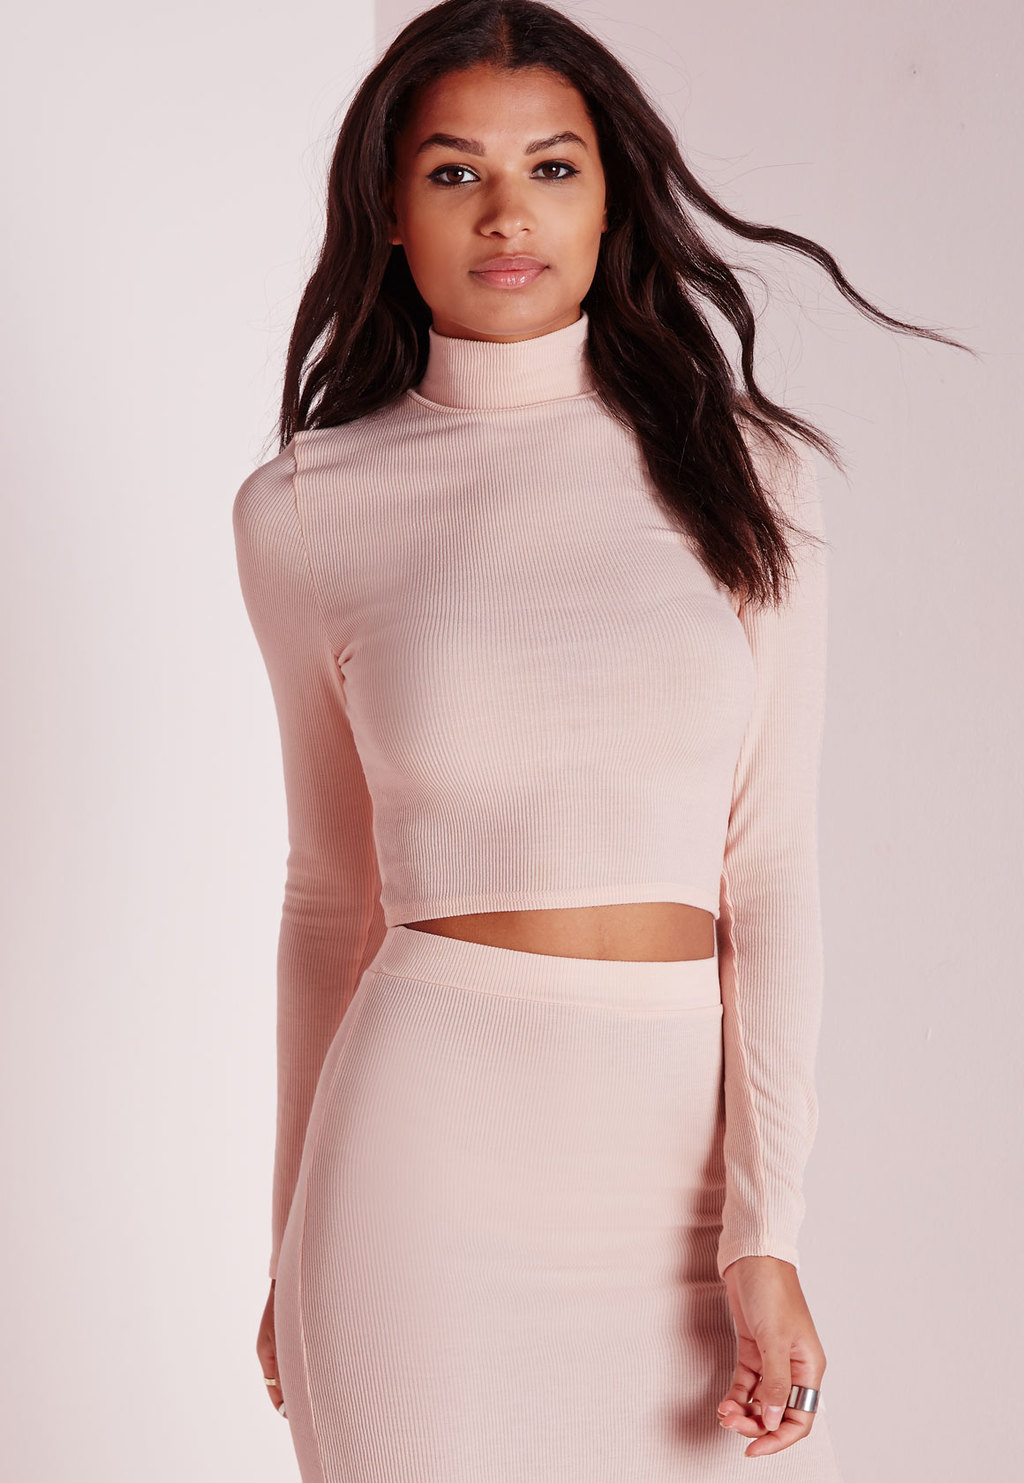 Petite High Neck Long Sleeve Ribbed Crop Top Nude, Beige - pattern: plain; neckline: roll neck; predominant colour: nude; occasions: casual, evening; length: standard; style: top; fibres: cotton - stretch; fit: body skimming; sleeve length: long sleeve; sleeve style: standard; pattern type: fabric; texture group: jersey - stretchy/drapey; season: a/w 2015; wardrobe: basic